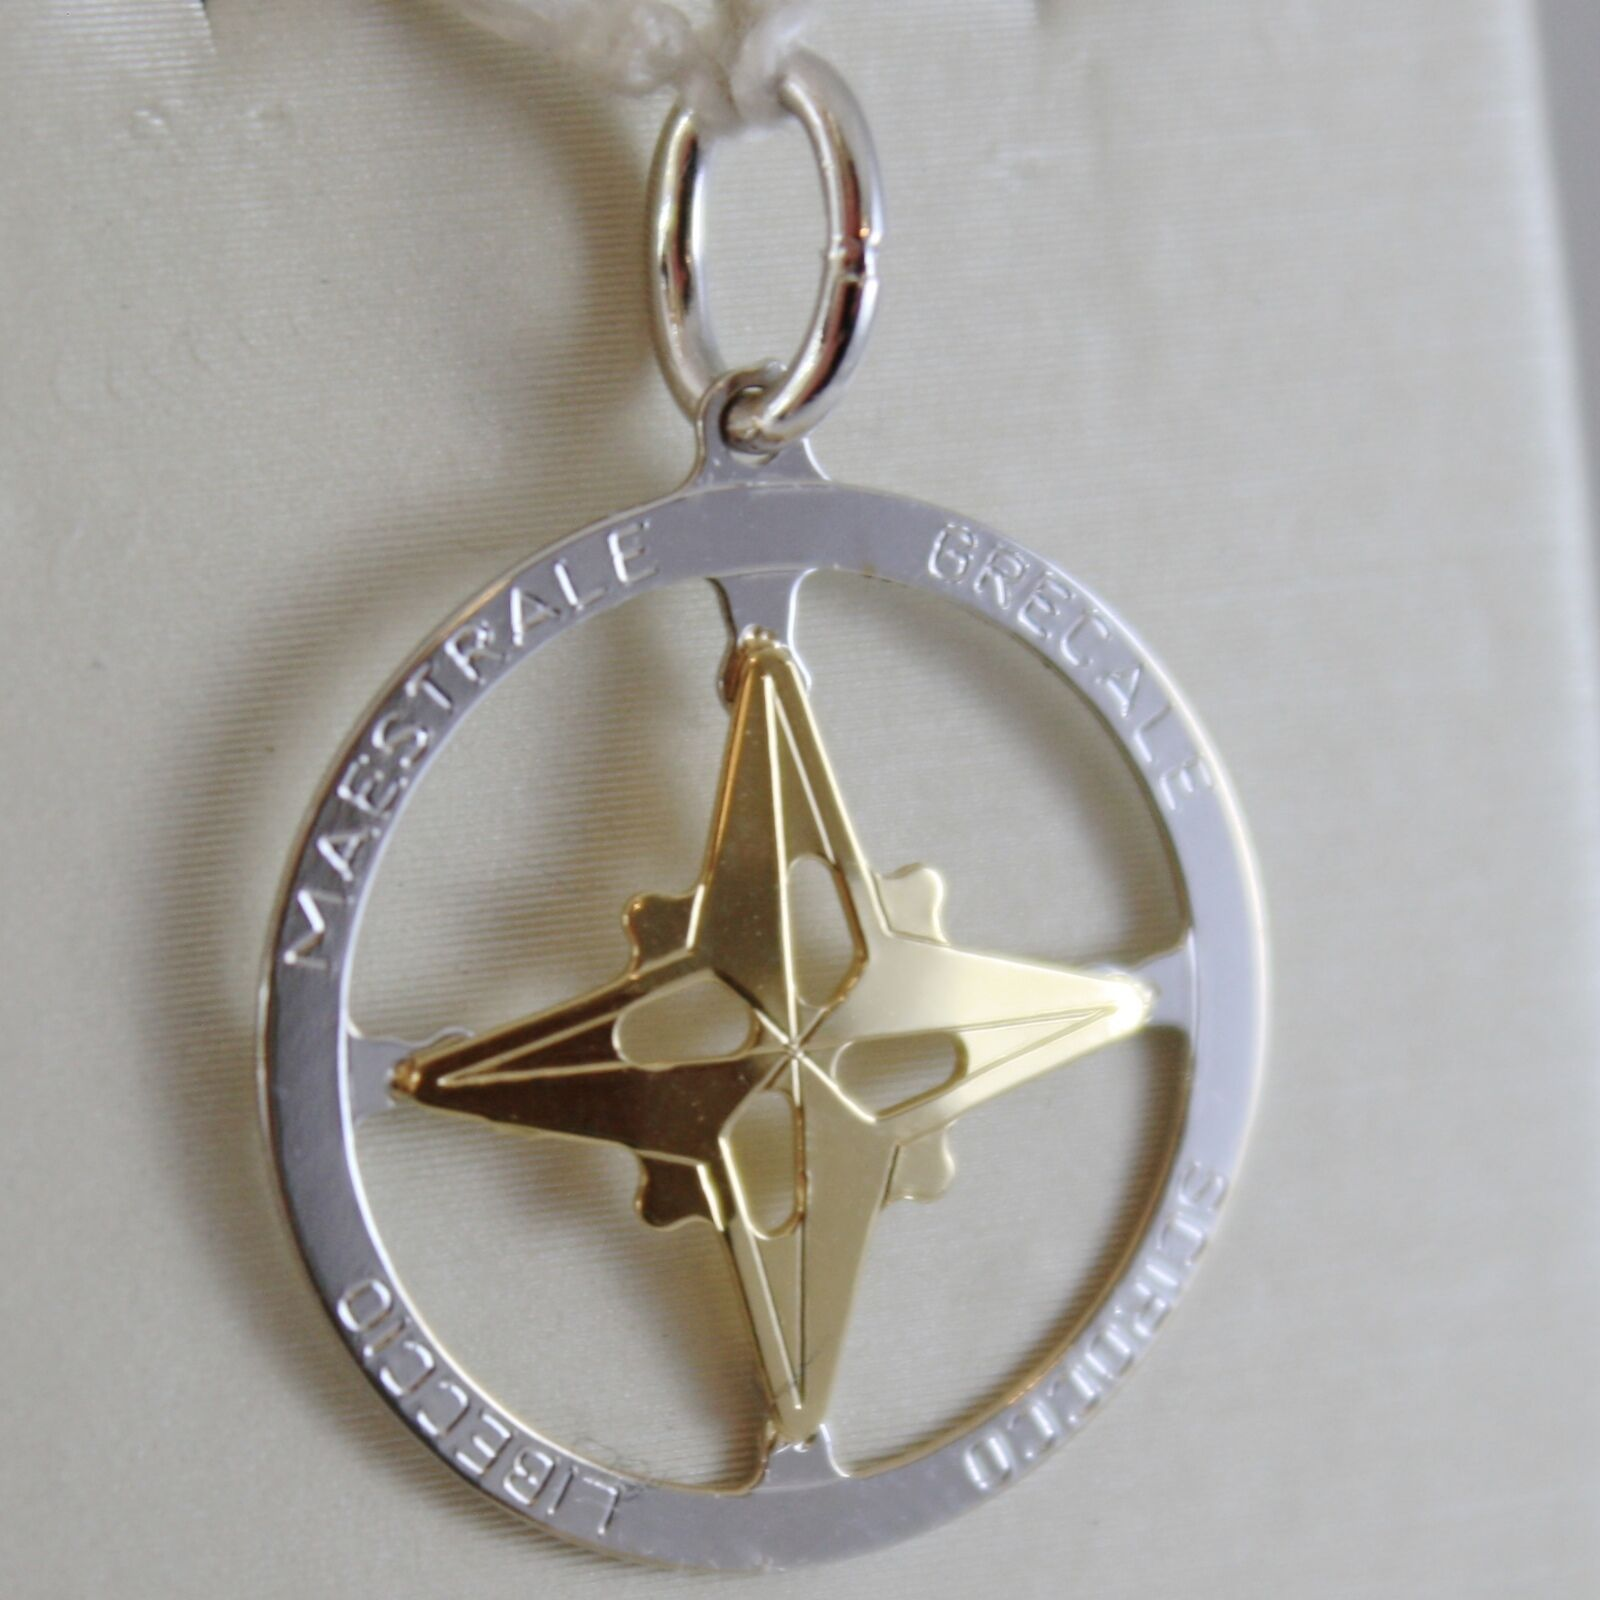 18K WHITE & YELLOW GOLD WIND ROSE, COMPASS CHARM, WINDS PENDANT MADE IN ITALY